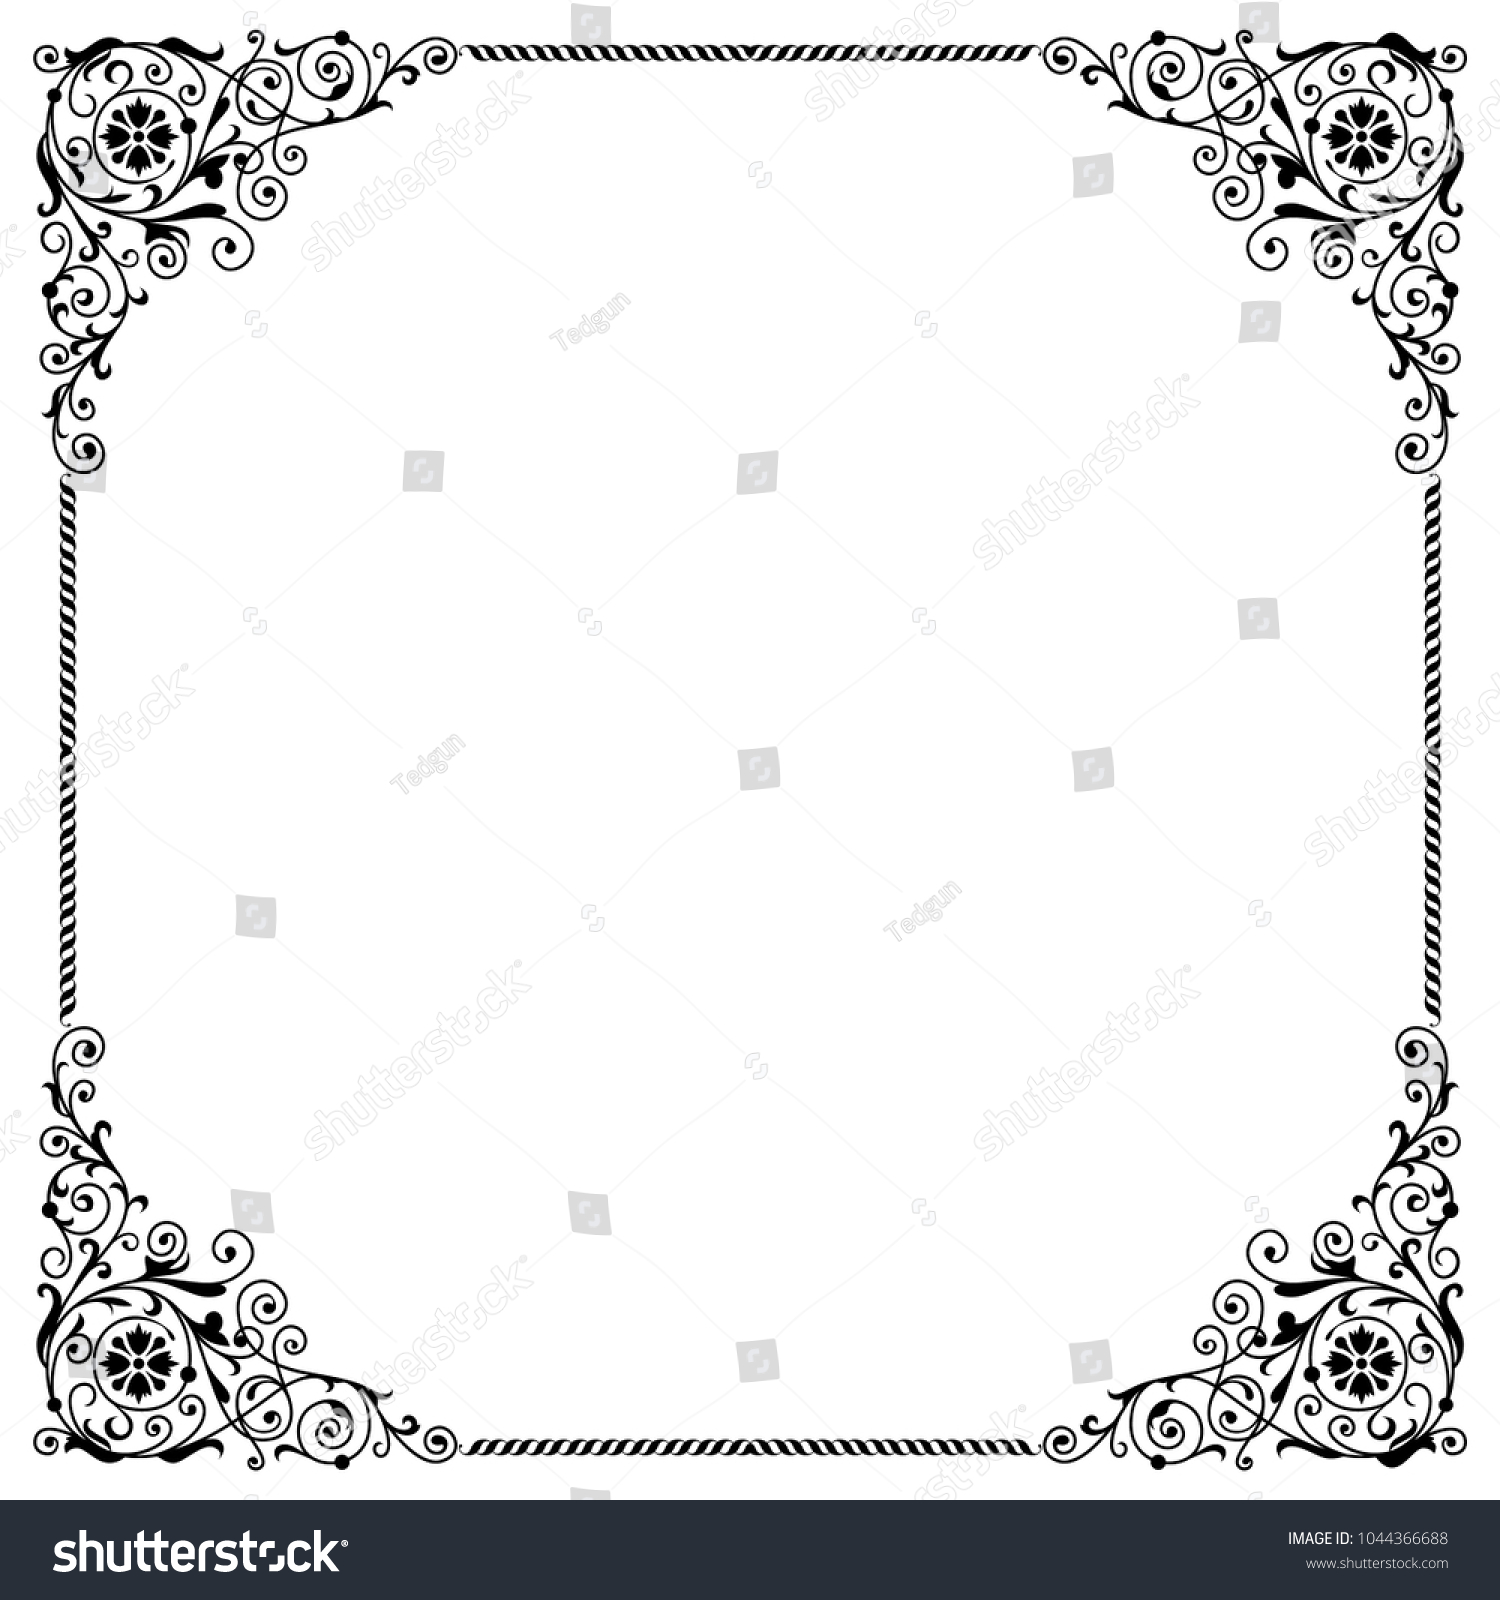 Vintage Black And White Frame Border Floral Elements In The Corners Useful For Greeting